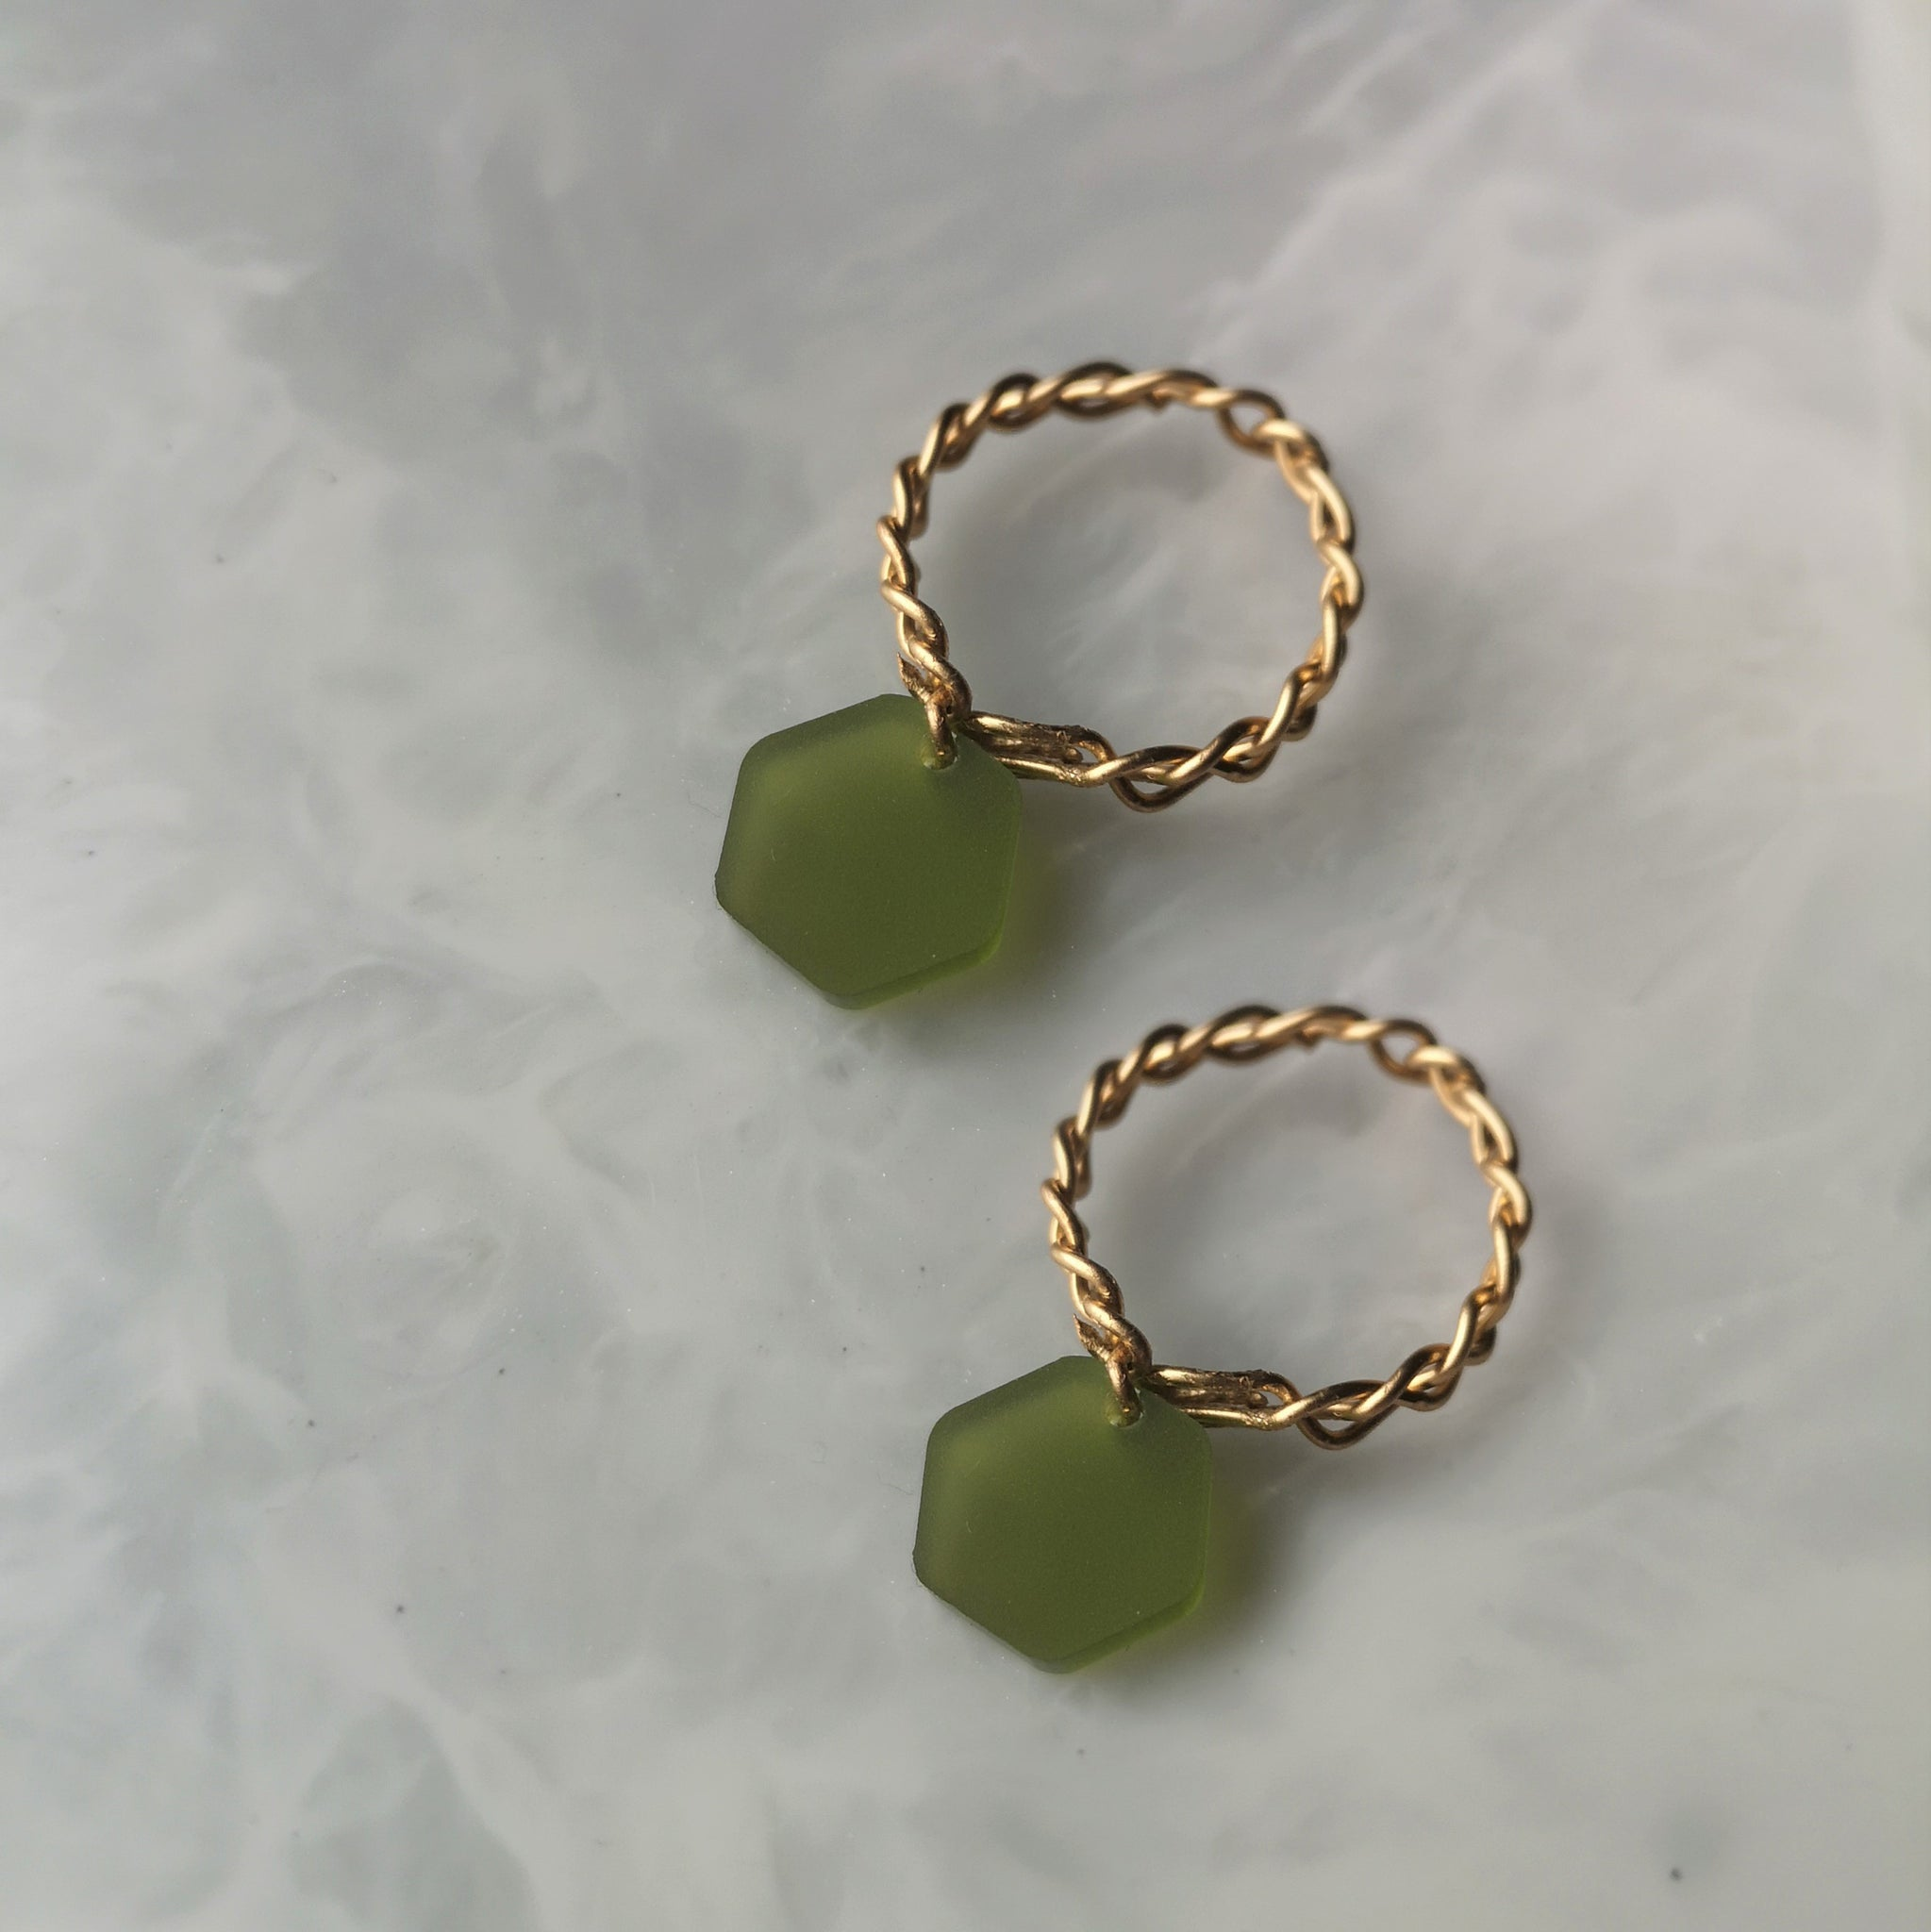 Gold and green hex earrings